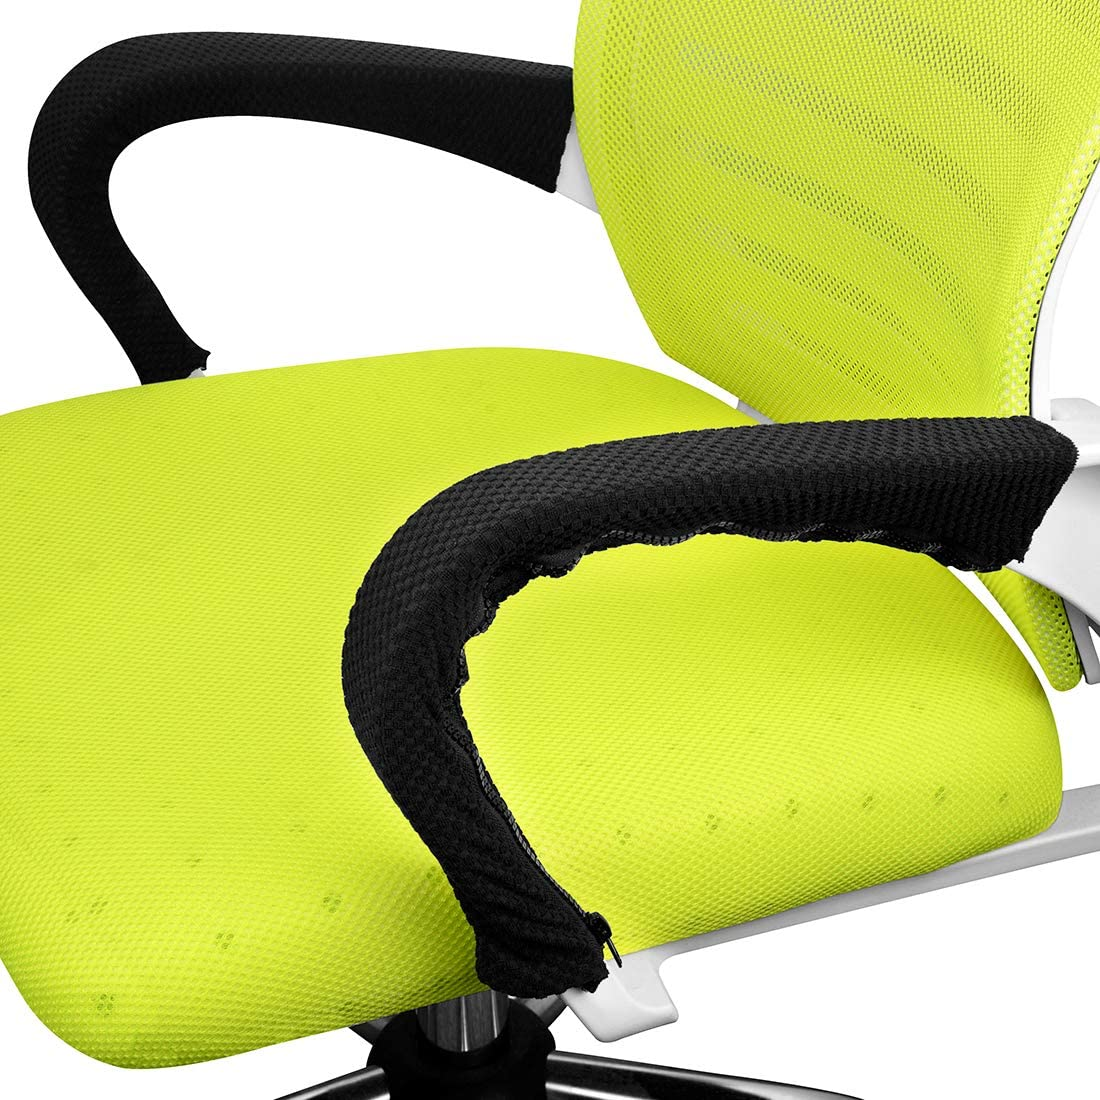 2 Pairs Office Chair Arm Covers, Stretch Grid Armrest Covers for Chairs, Zipper Office Chair Armrest Covers (Blake)